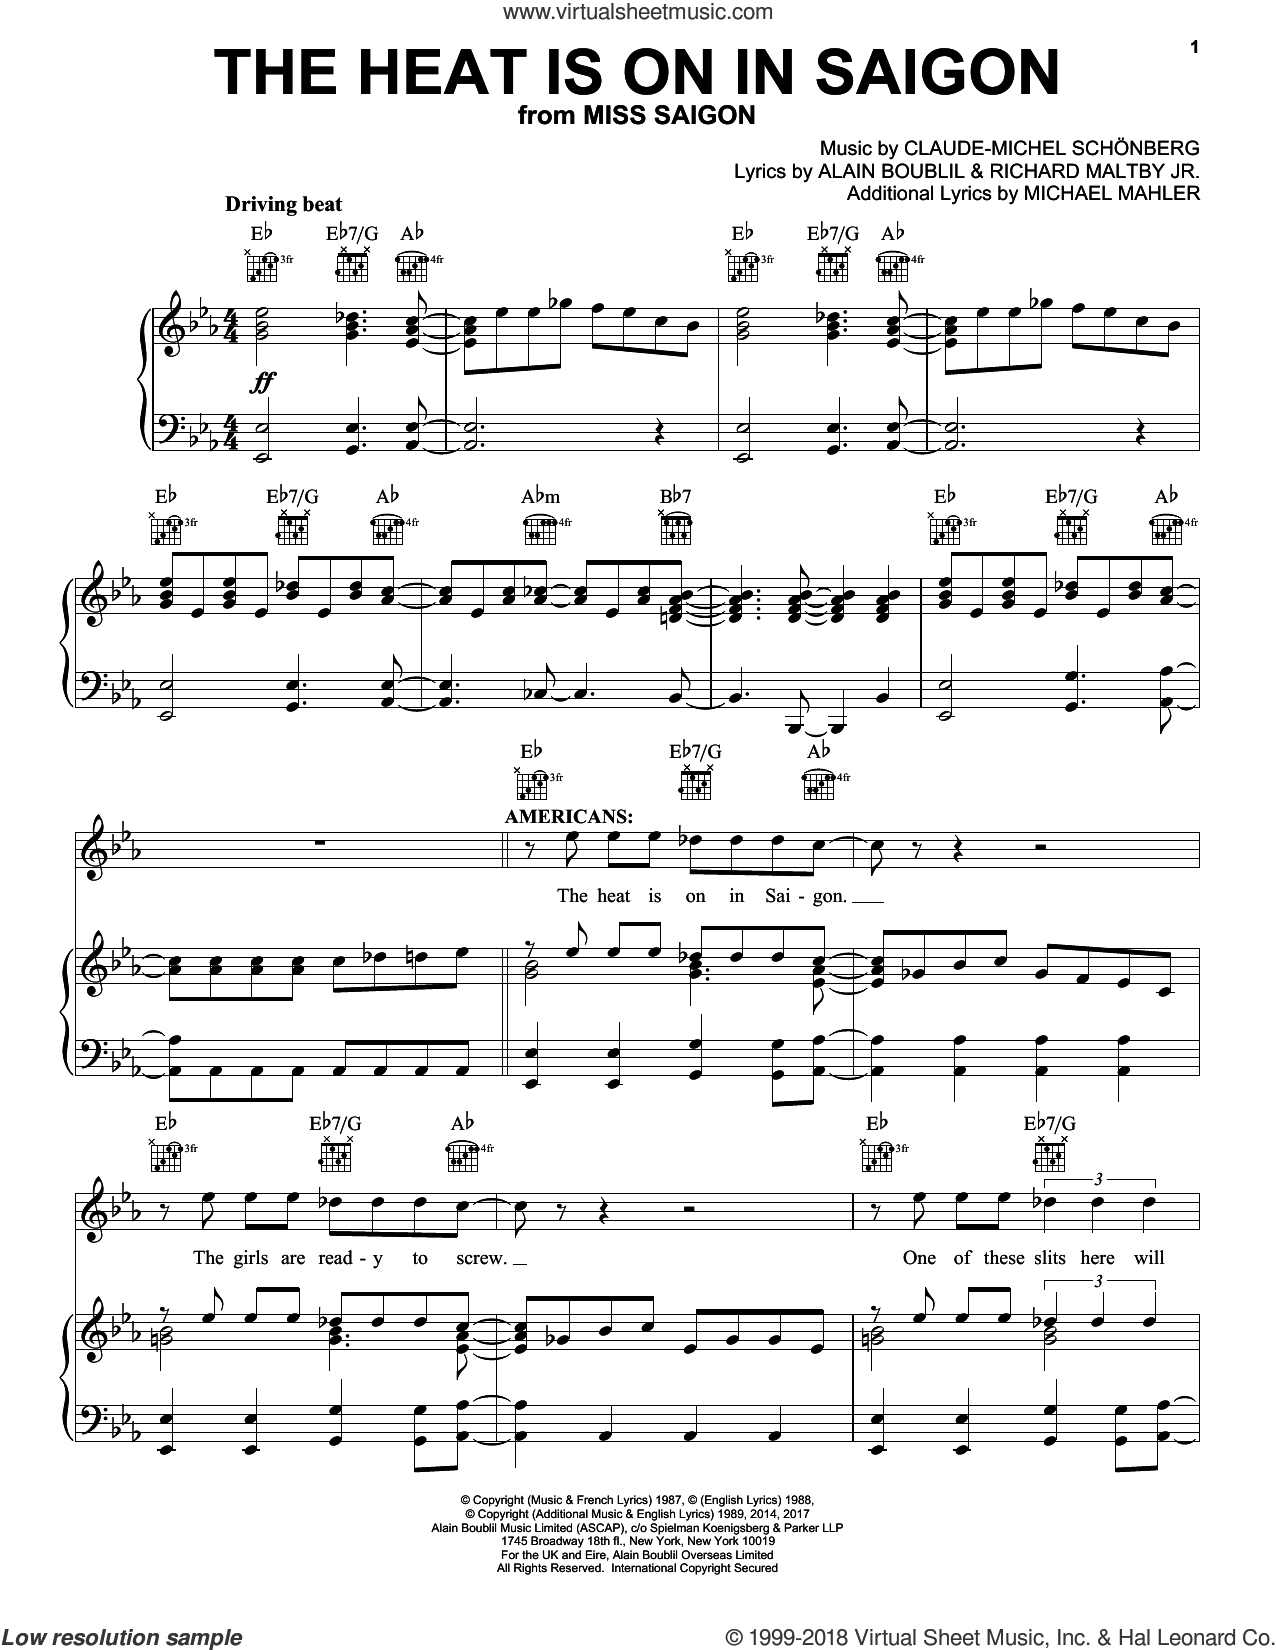 The Heat Is On In Saigon sheet music for voice, piano or guitar by Claude-Michel Schonberg, Miss Saigon (Musical), Alain Boublil and Richard Maltby, Jr., intermediate skill level